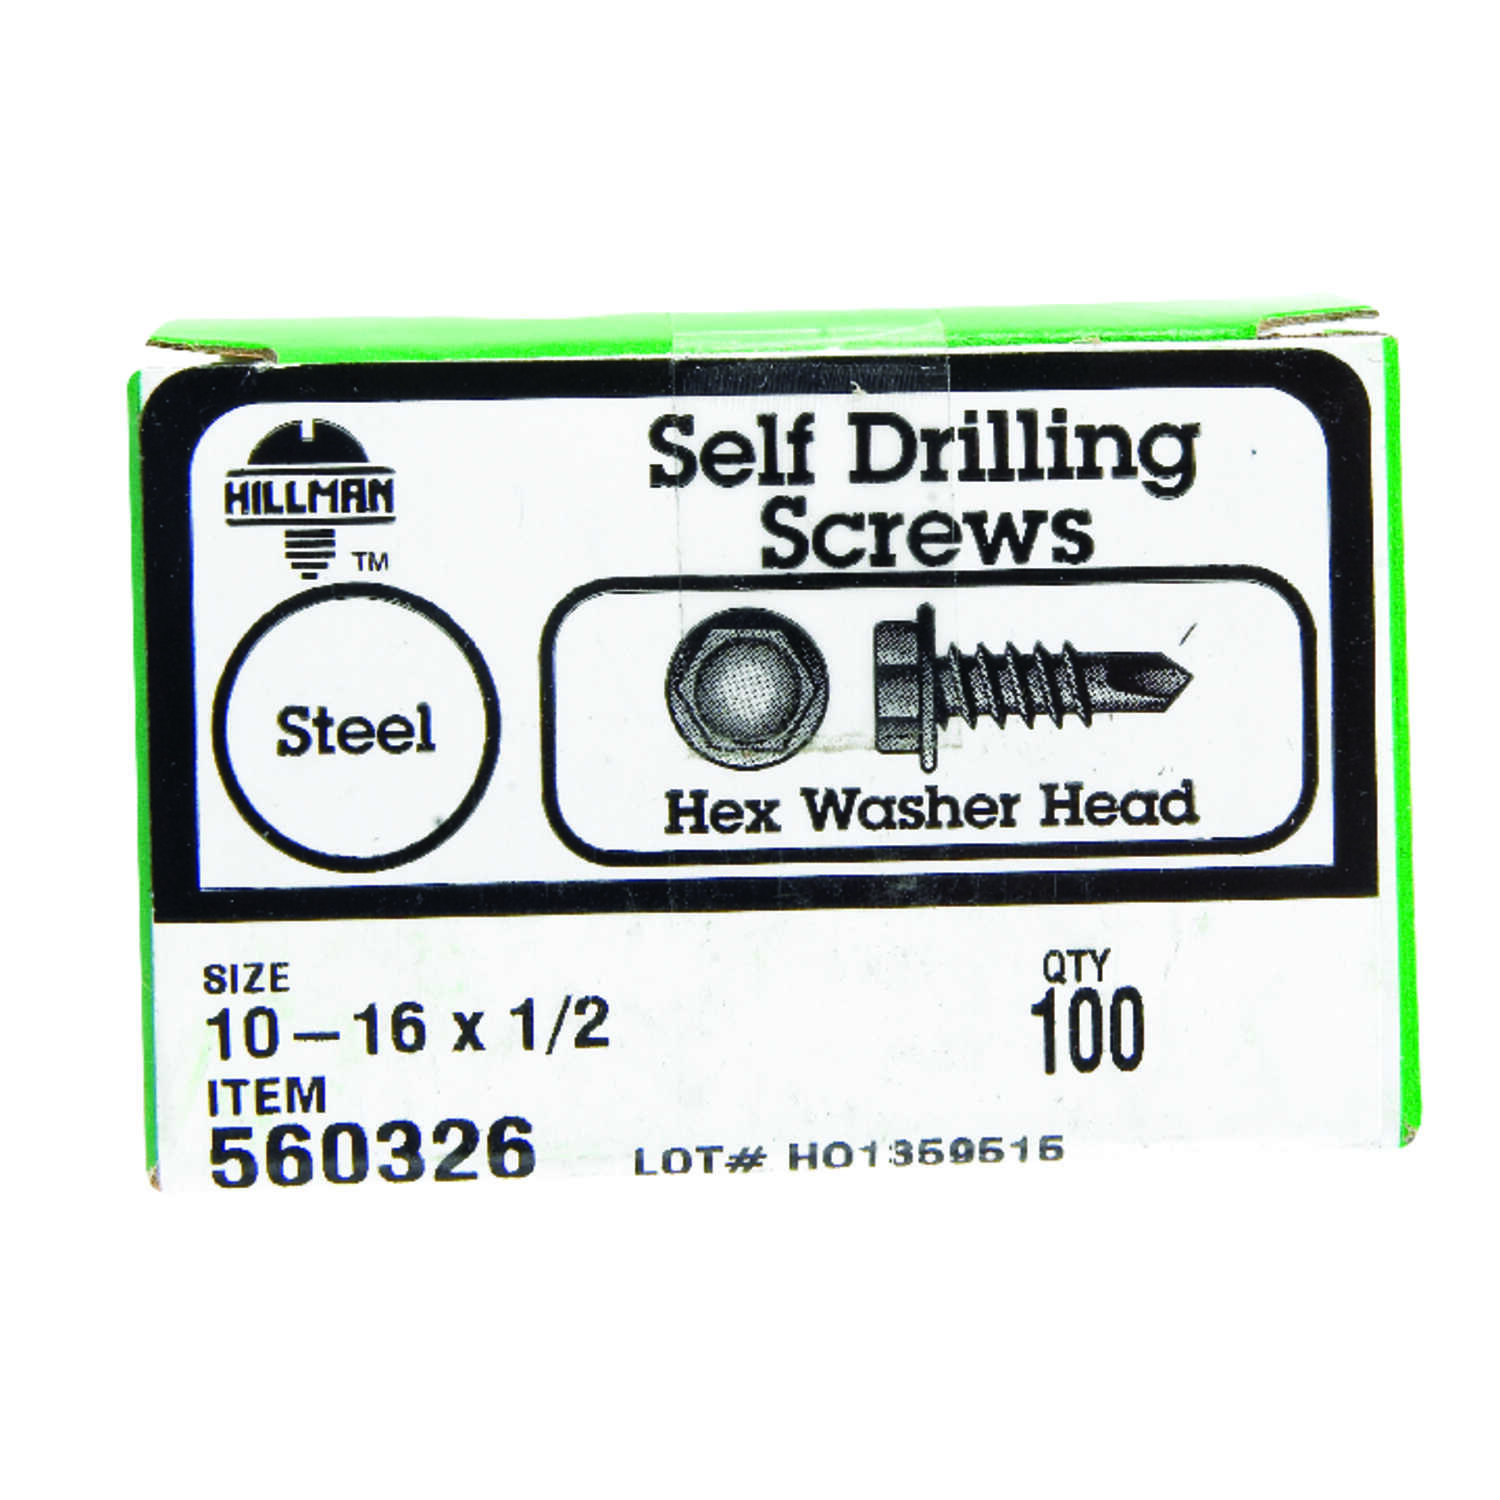 Hillman  10-16 in.  x 1/2 in. L Hex Washer Head Zinc-Plated  Steel  Self- Drilling Screws  100  1 pk